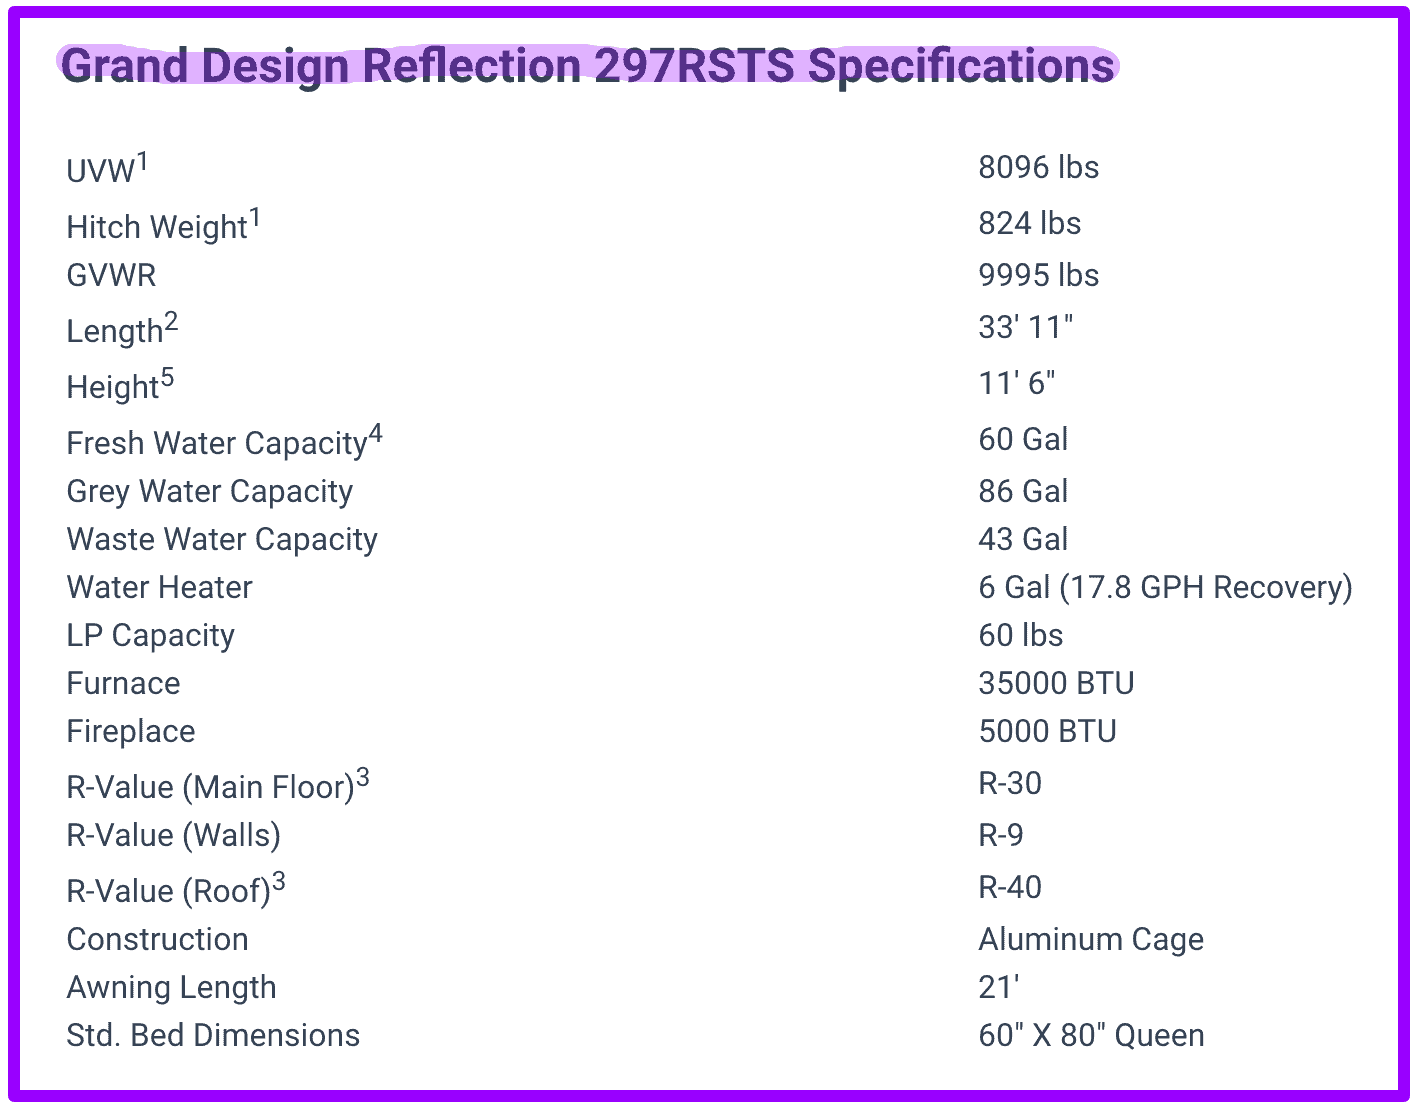 Grand Design Reflection 297RSTS specifications